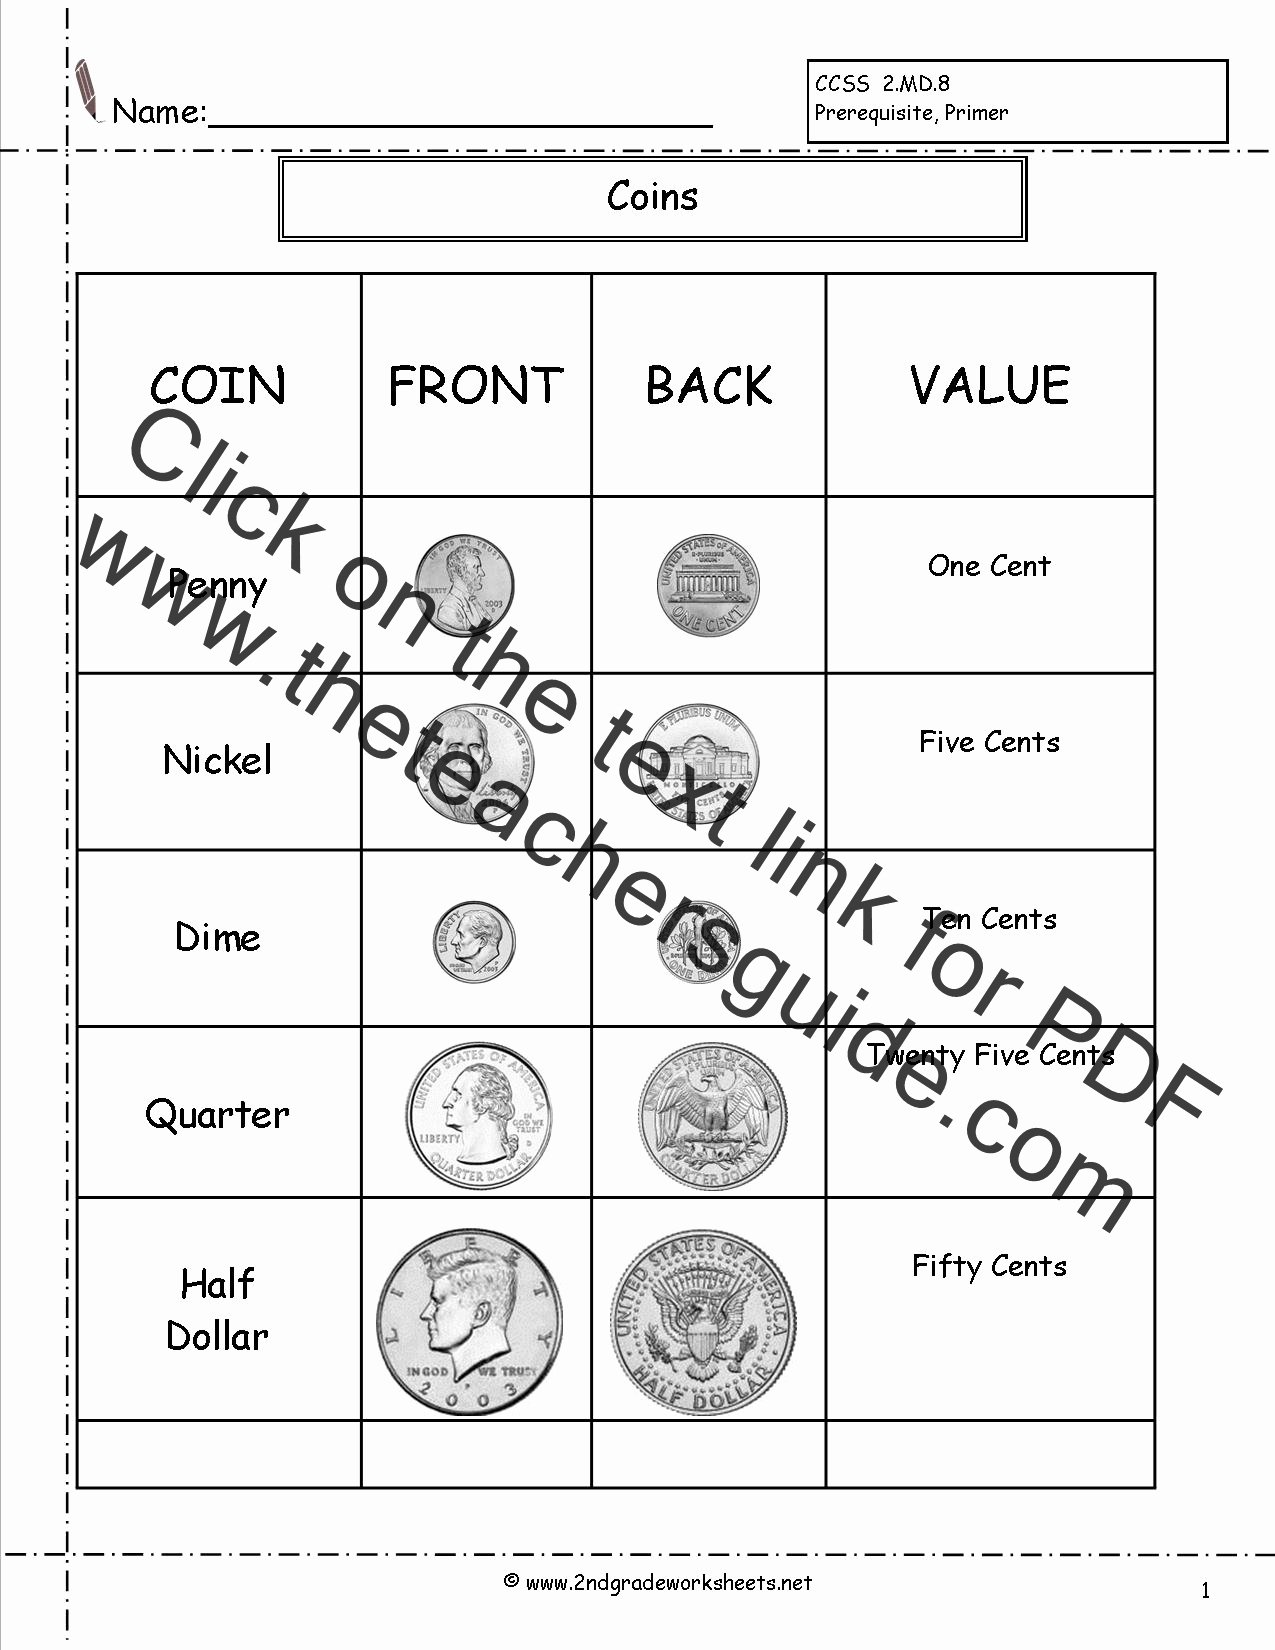 Counting Coins Worksheets 2nd Grade top Counting Coins and Money Worksheets and Printouts